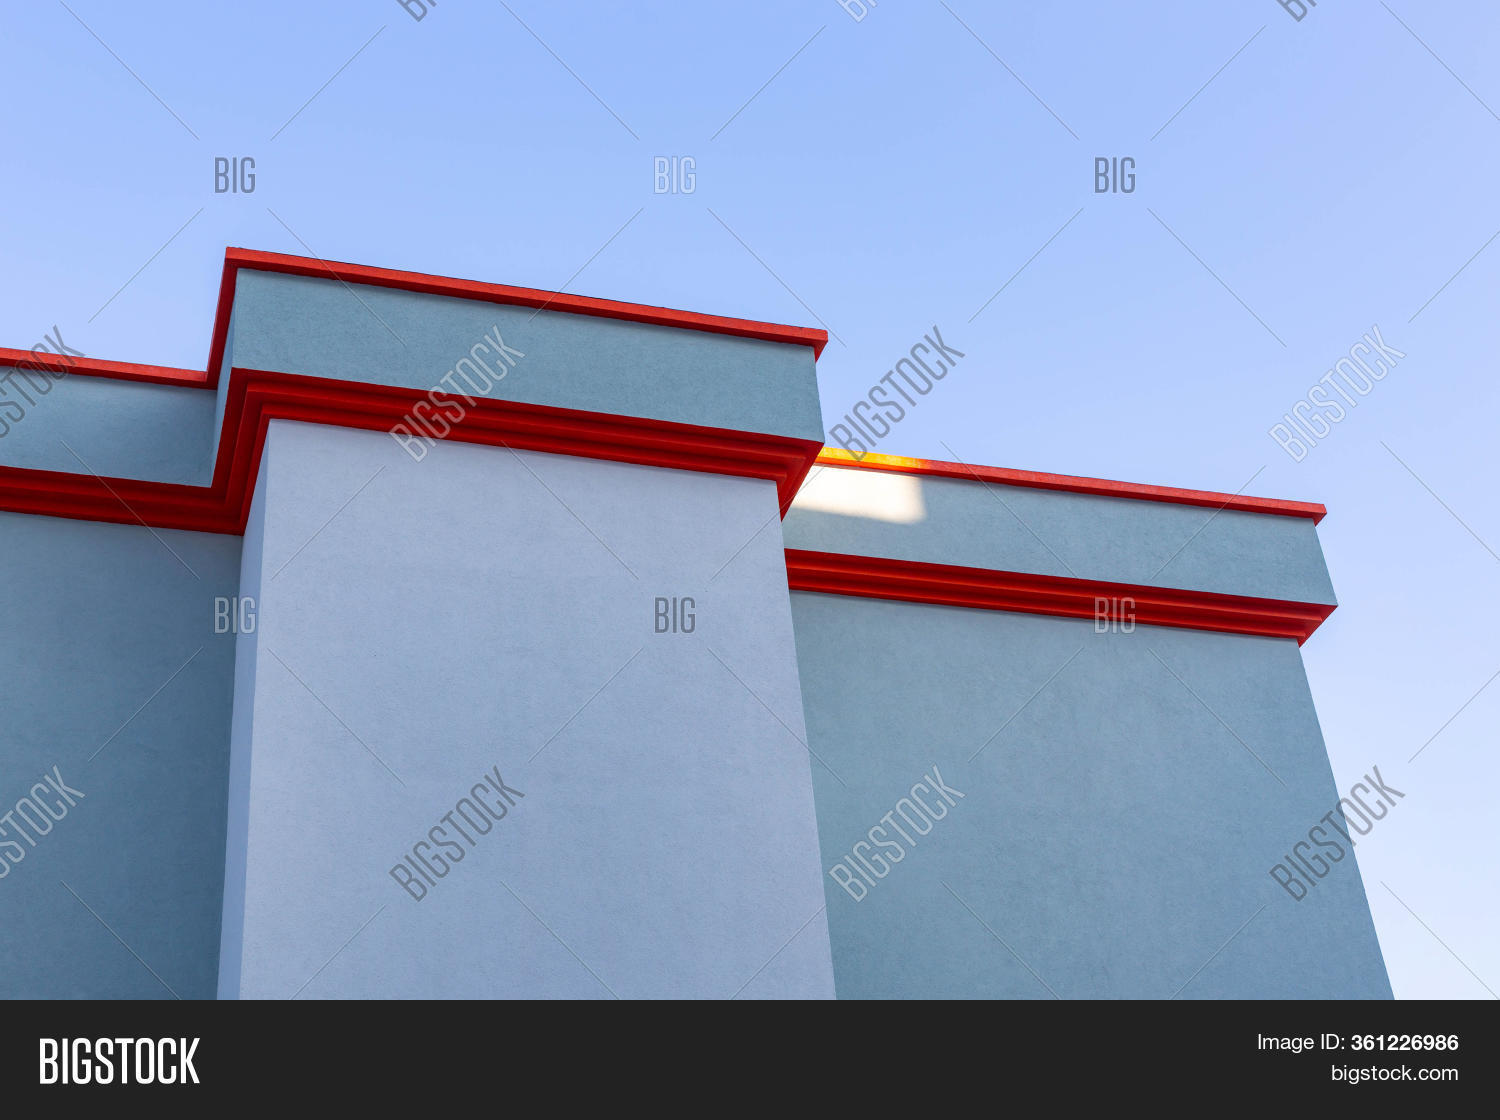 Cornice Modern Image Photo Free Trial Bigstock